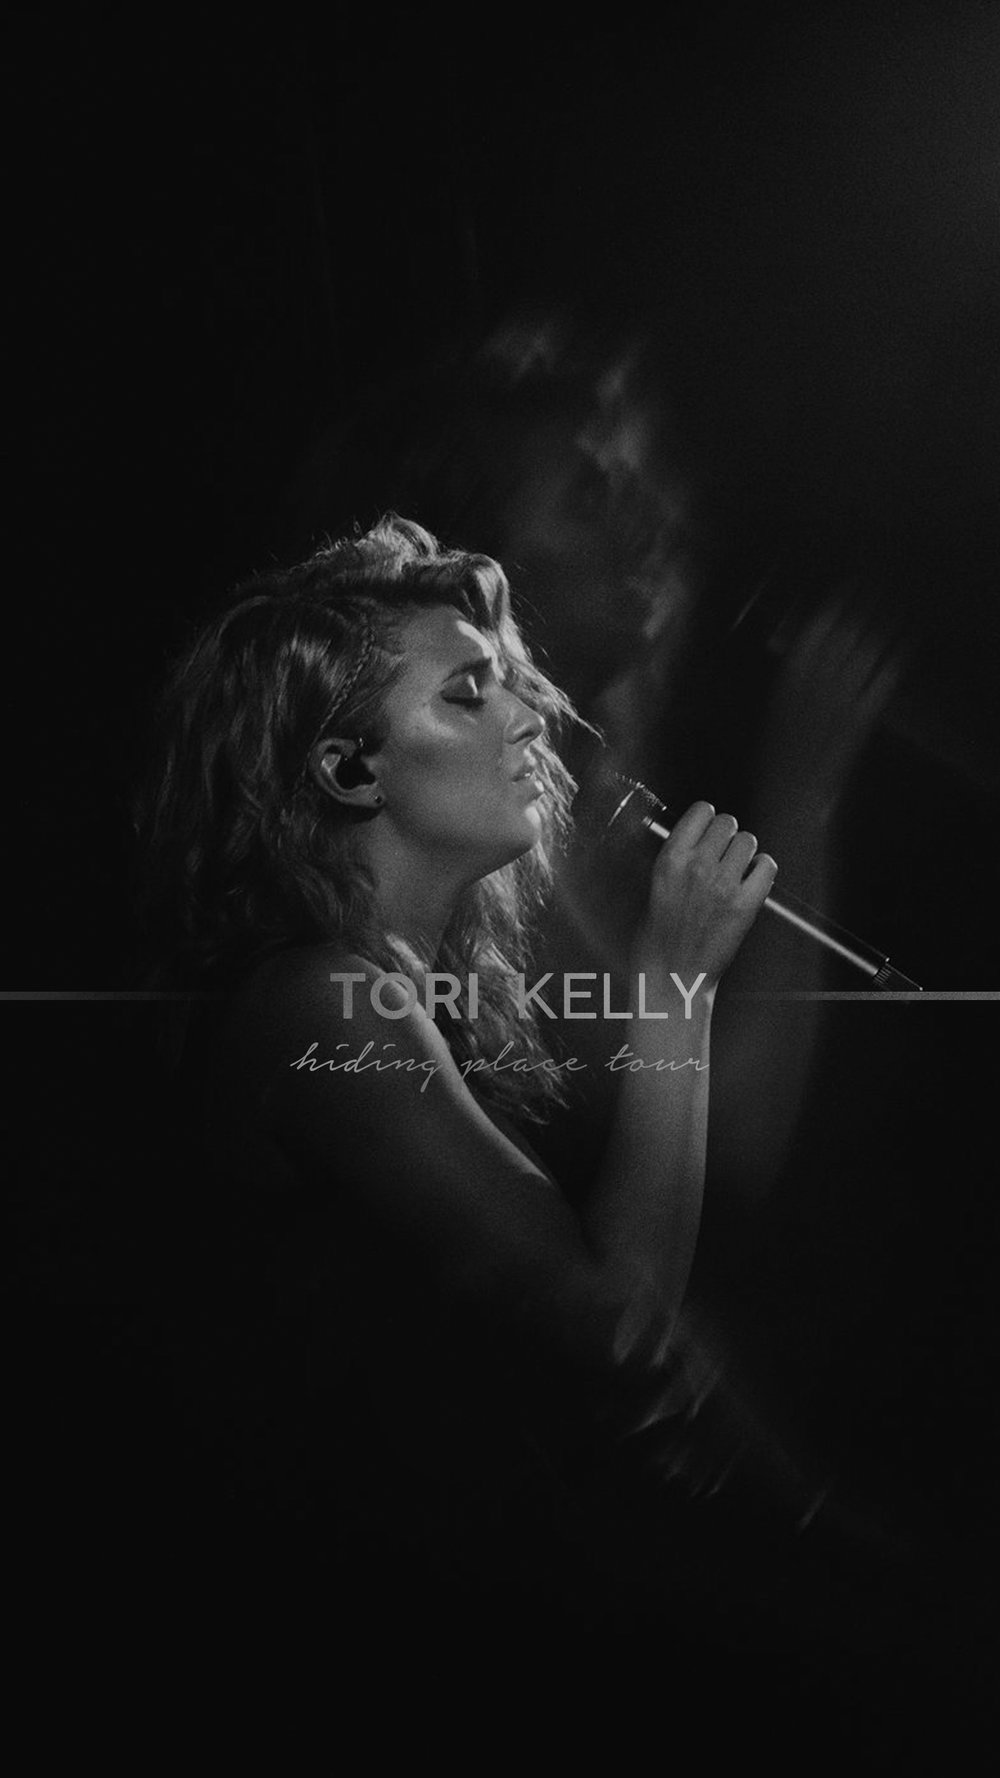 torikelly-lockscreen25.jpg